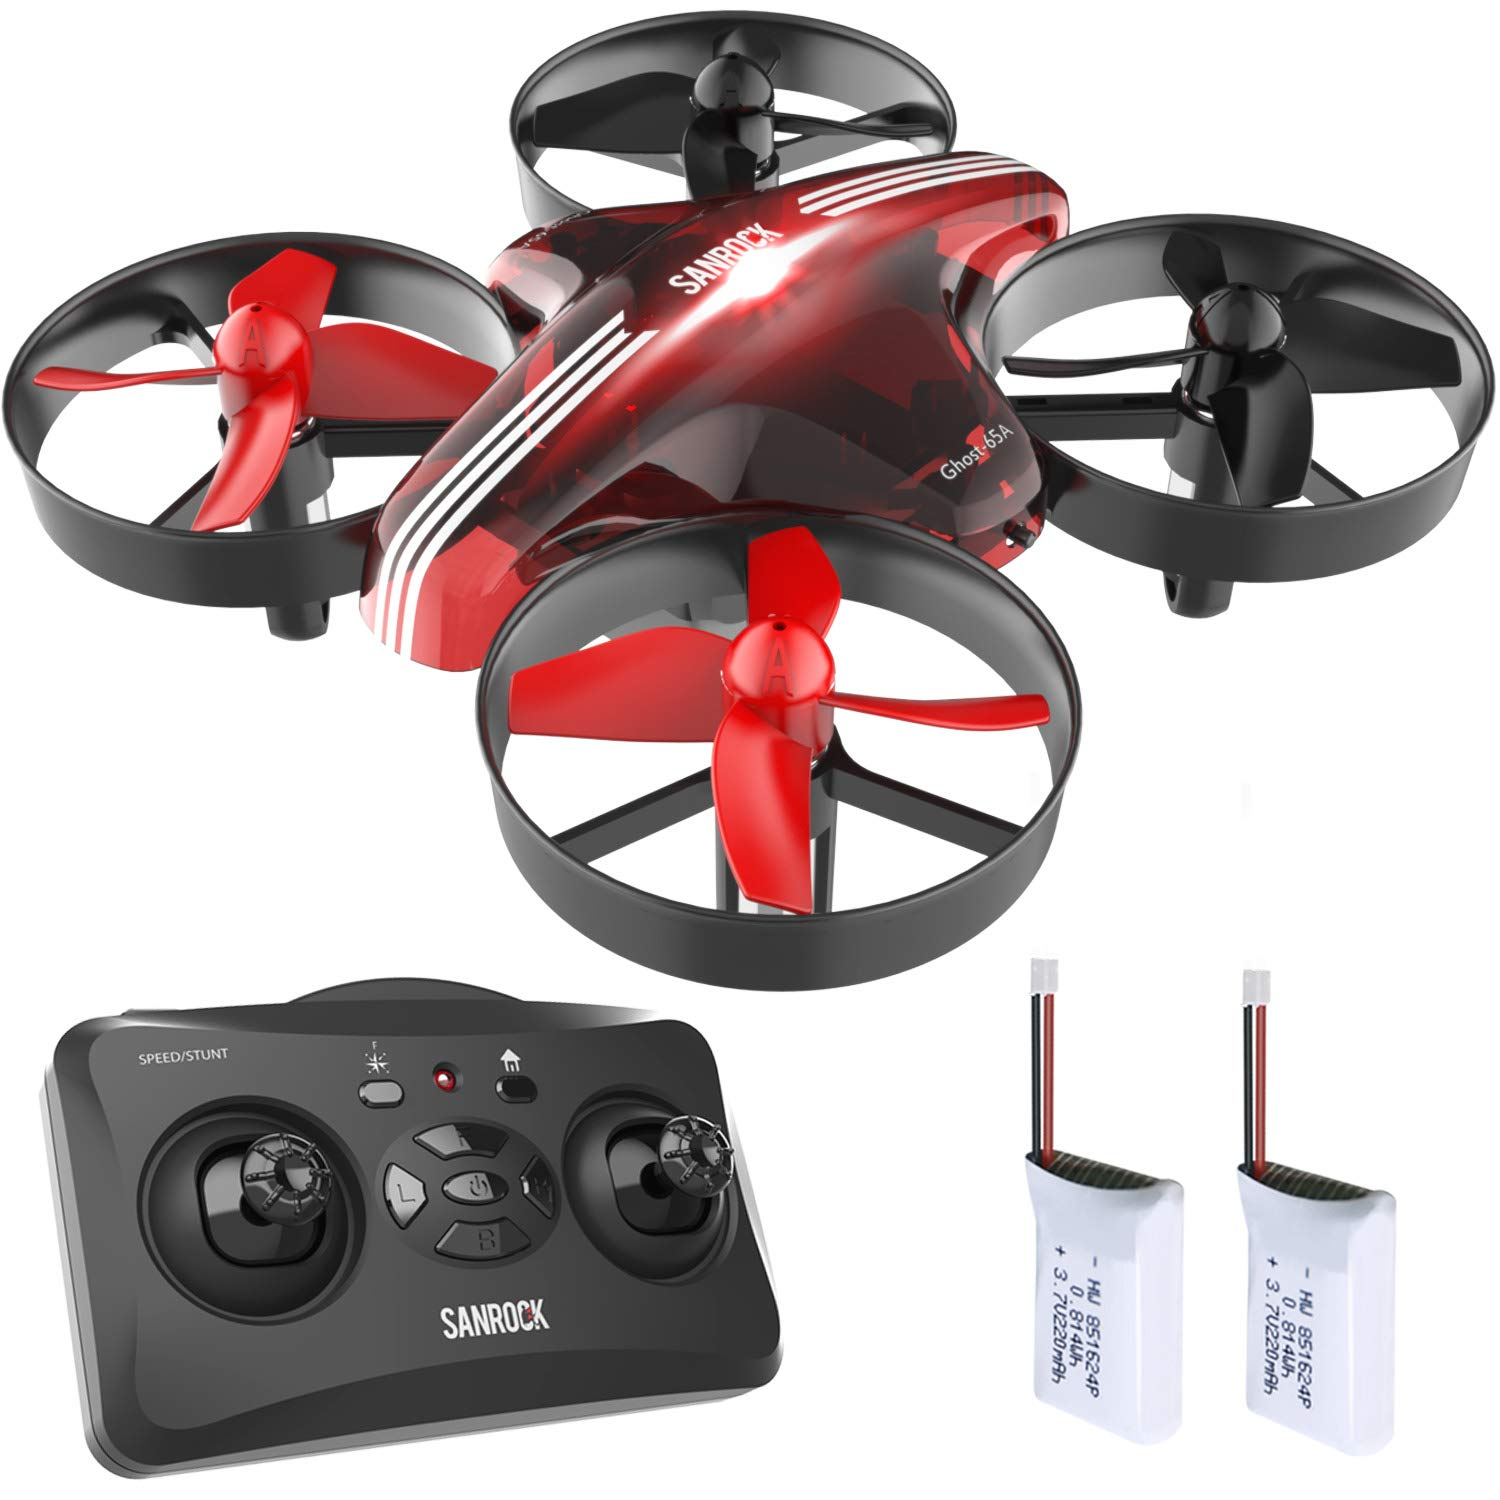 SANROCK GD65A Drone for Kids and Beginners, RC Mini Drone Quadcopter with Extra Battery, RTF 4 Channel 2.4G 6-Gyro Remote Control Aircraft with One key Return Home, 3D Flip, Great toy for Boys & Girls by SANROCK